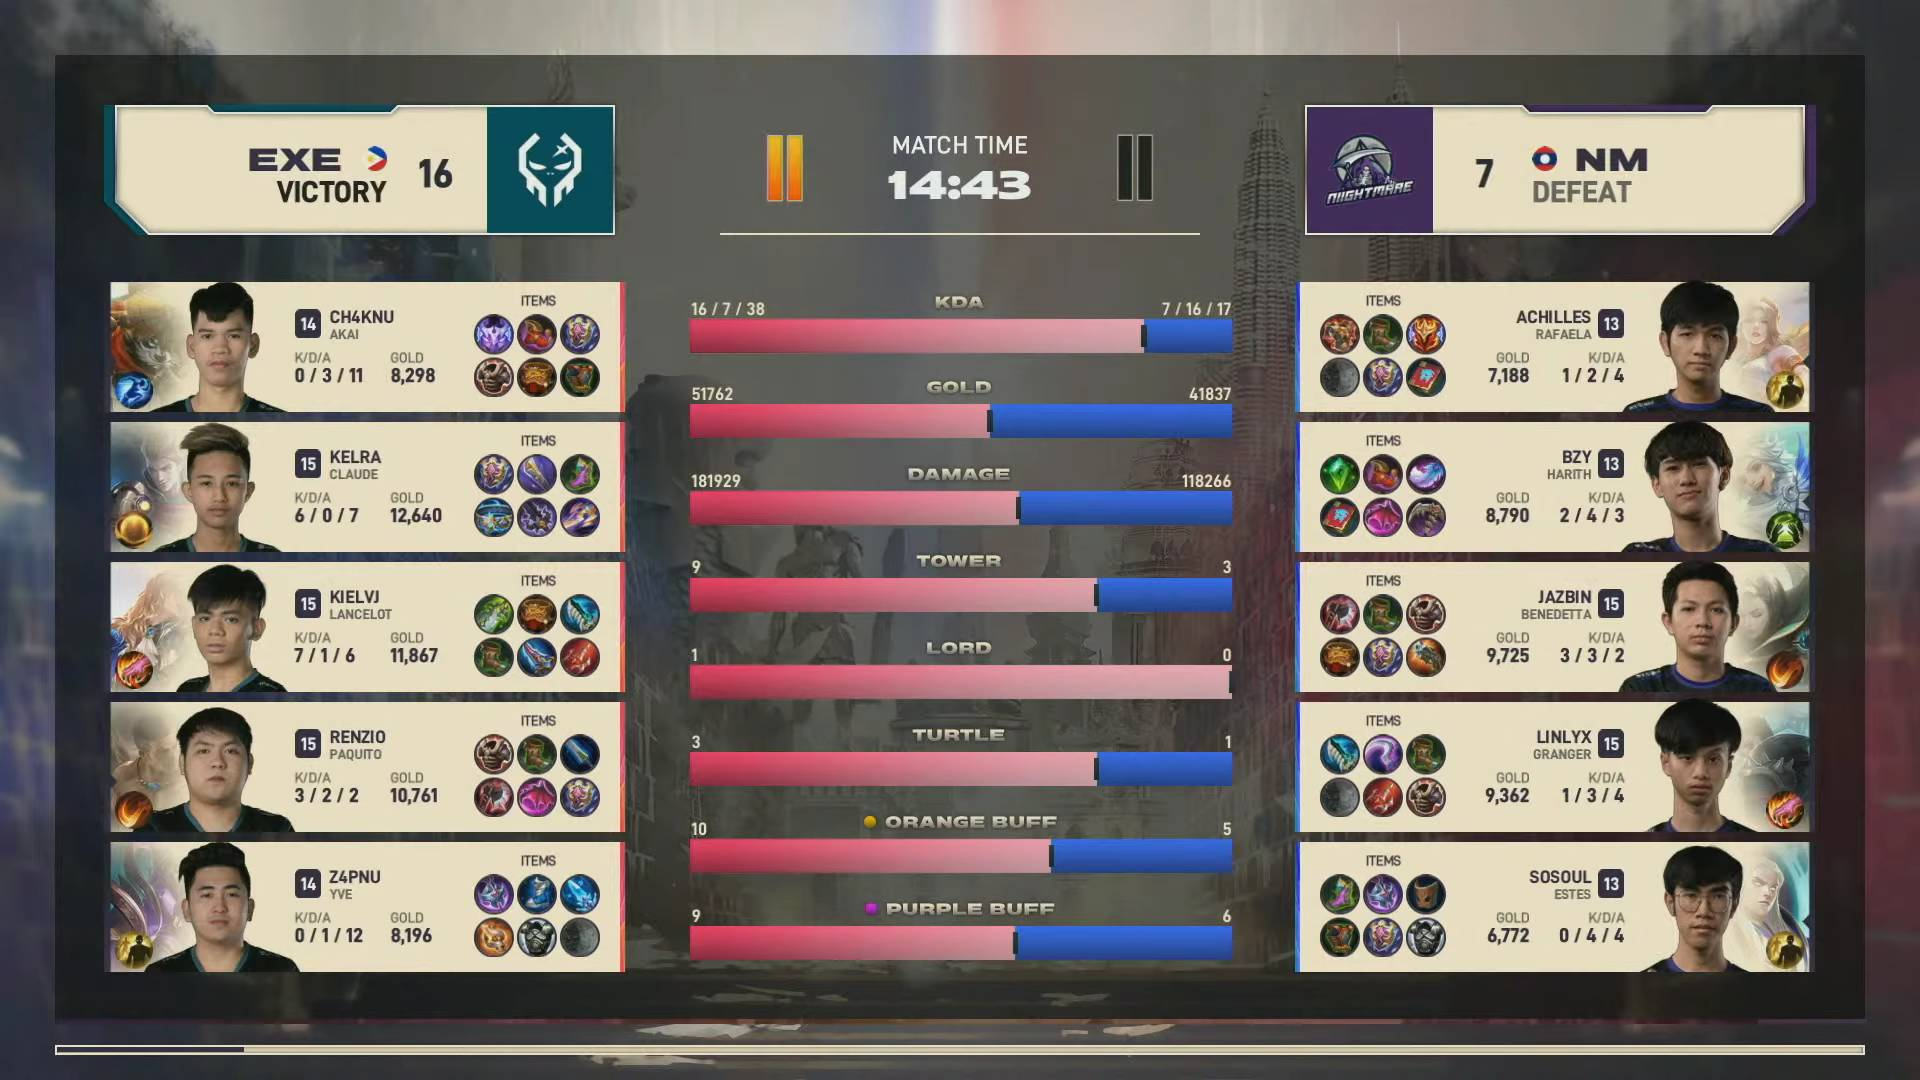 2021-MSC-Execration-def-Nightmare-Game-2 Z4pnu makes long-awaited debut as Execration sweeps MSC Group C ESports Mobile Legends MPL-PH News  - philippine sports news